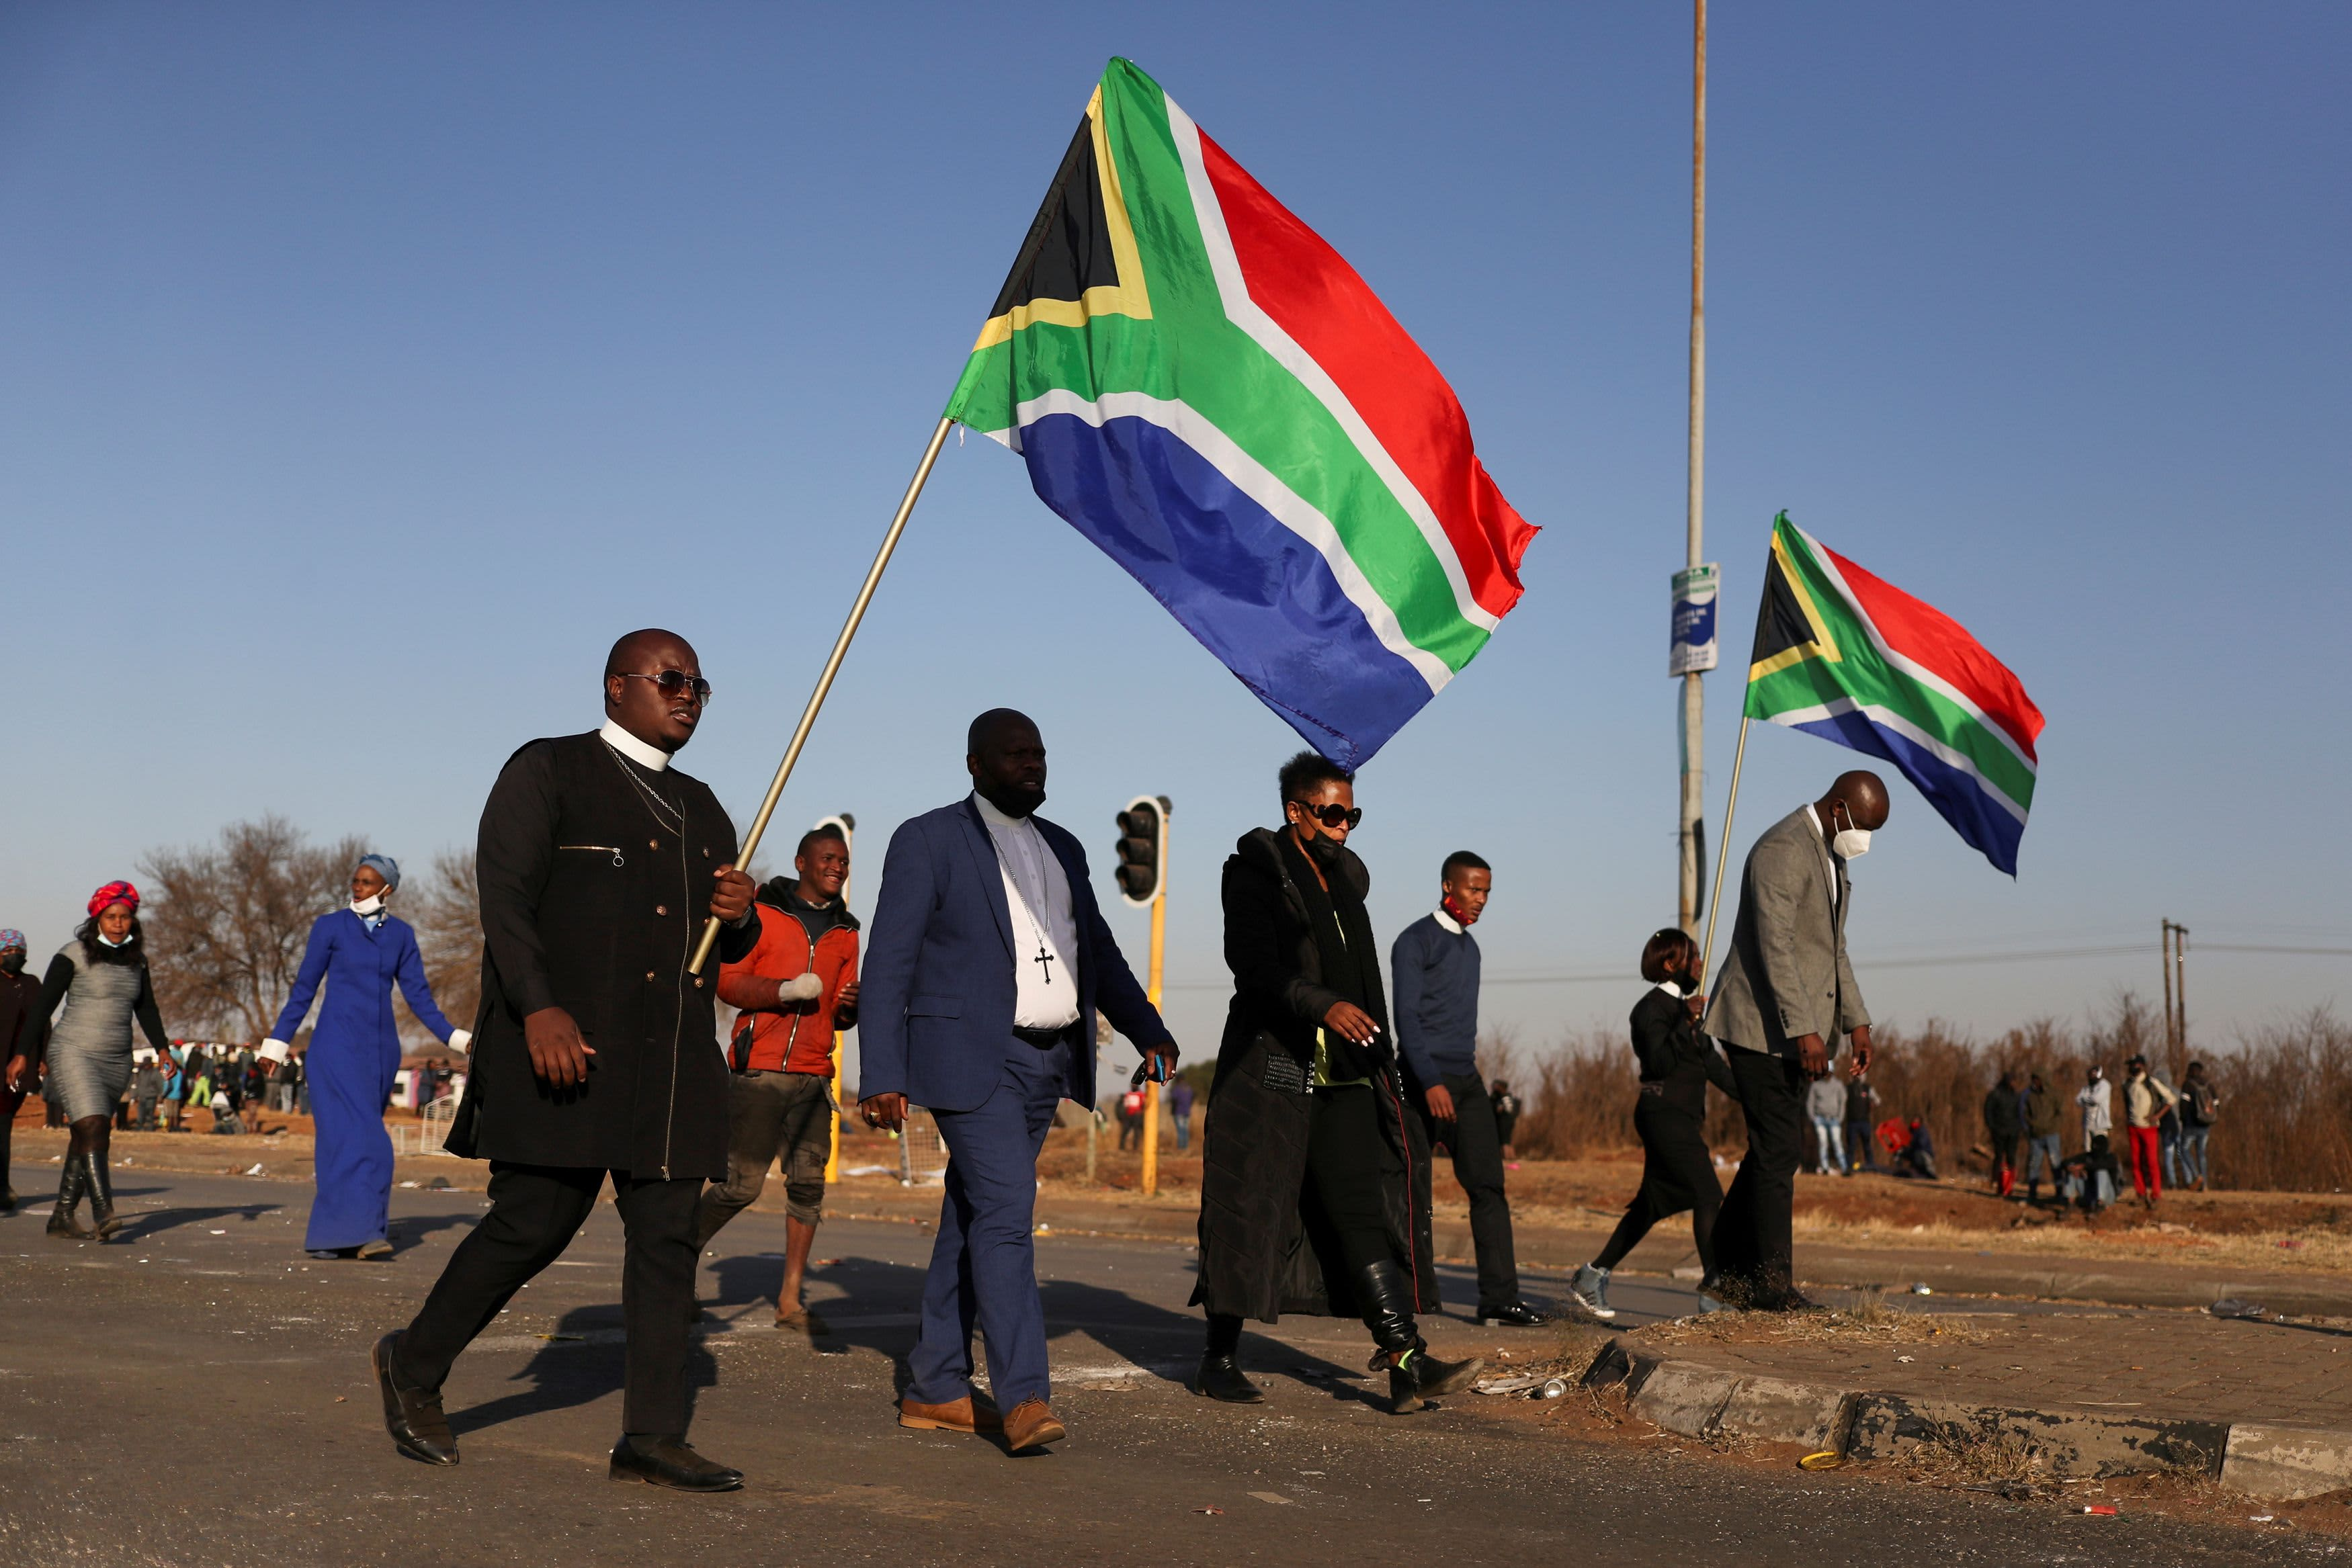 South Africa unrest and Covid measures are starting to derail its economic recovery